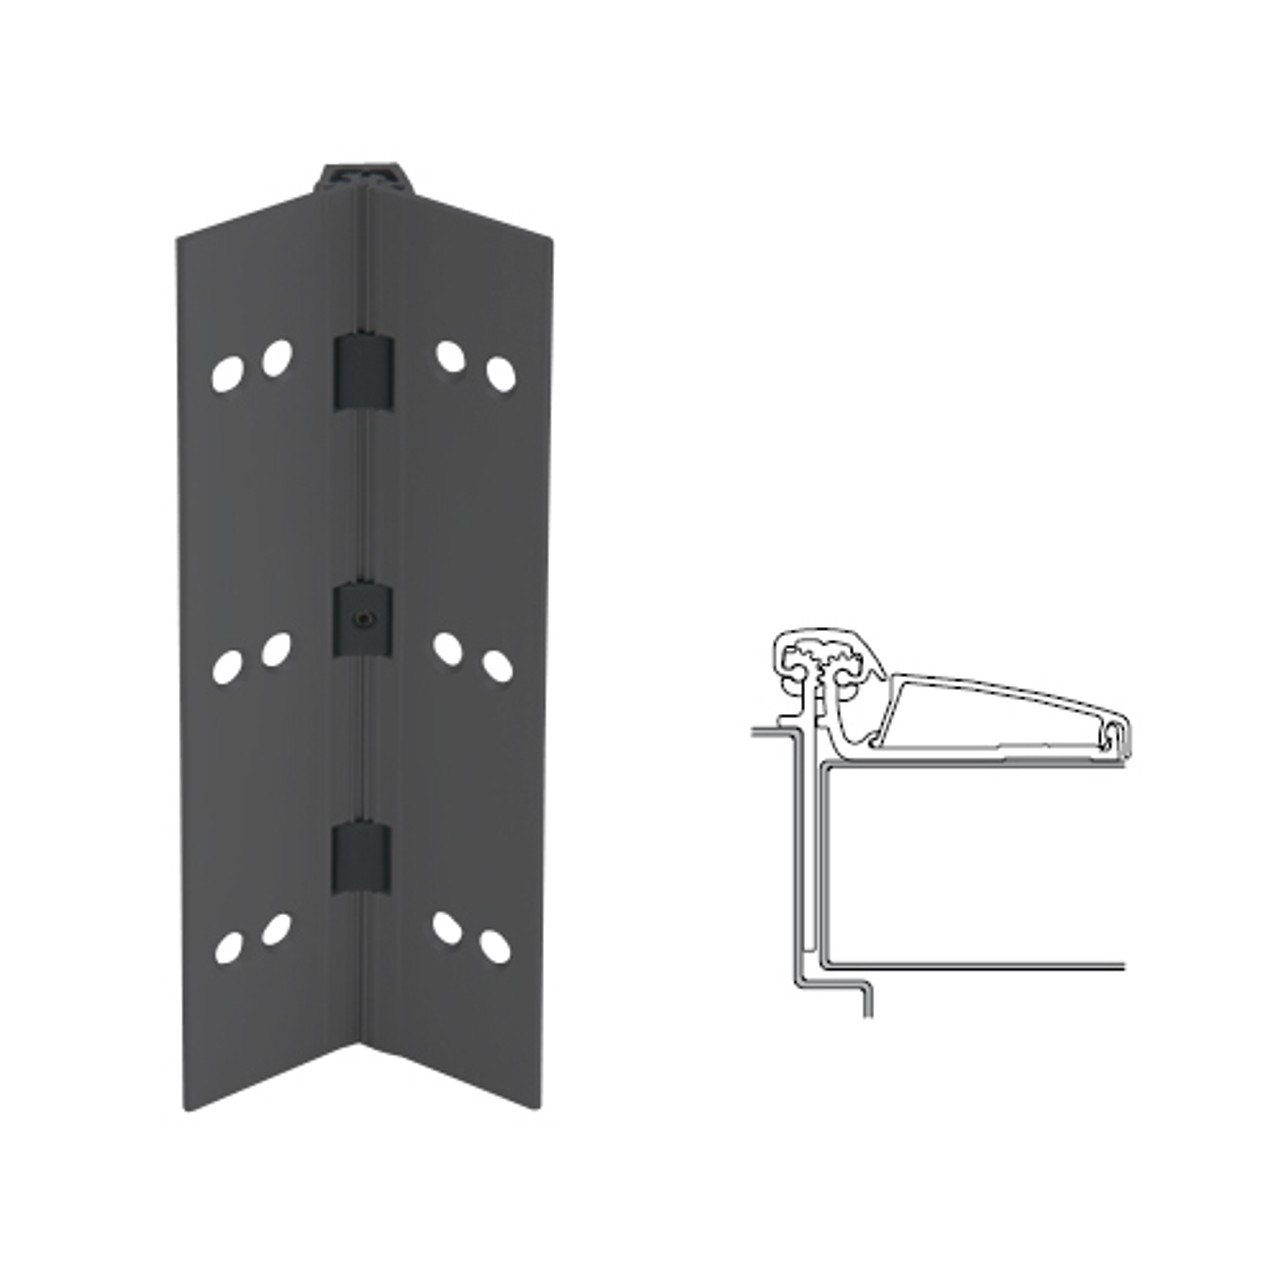 046XY-315AN-95-TFWD IVES Adjustable Half Surface Continuous Geared Hinges with Thread Forming Screws in Anodized Black